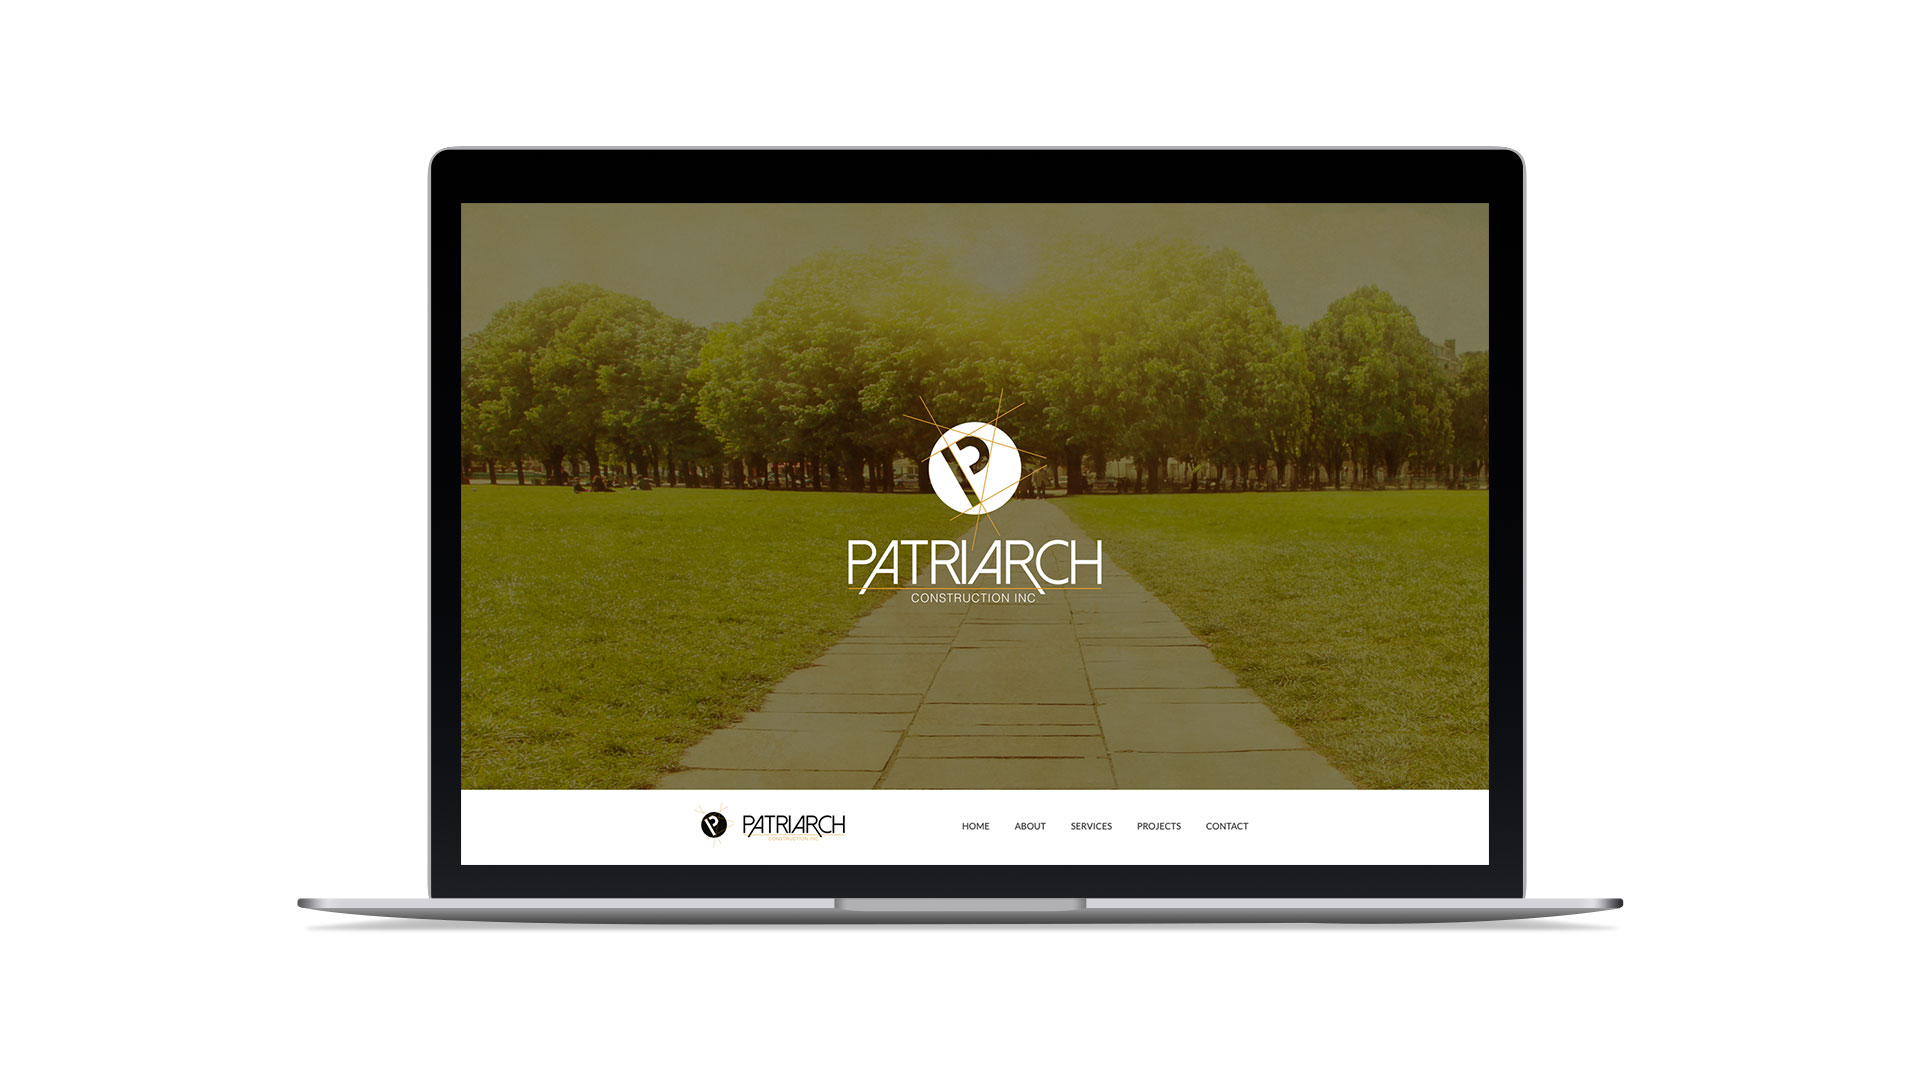 Website Design & Development for Patriarch Construction